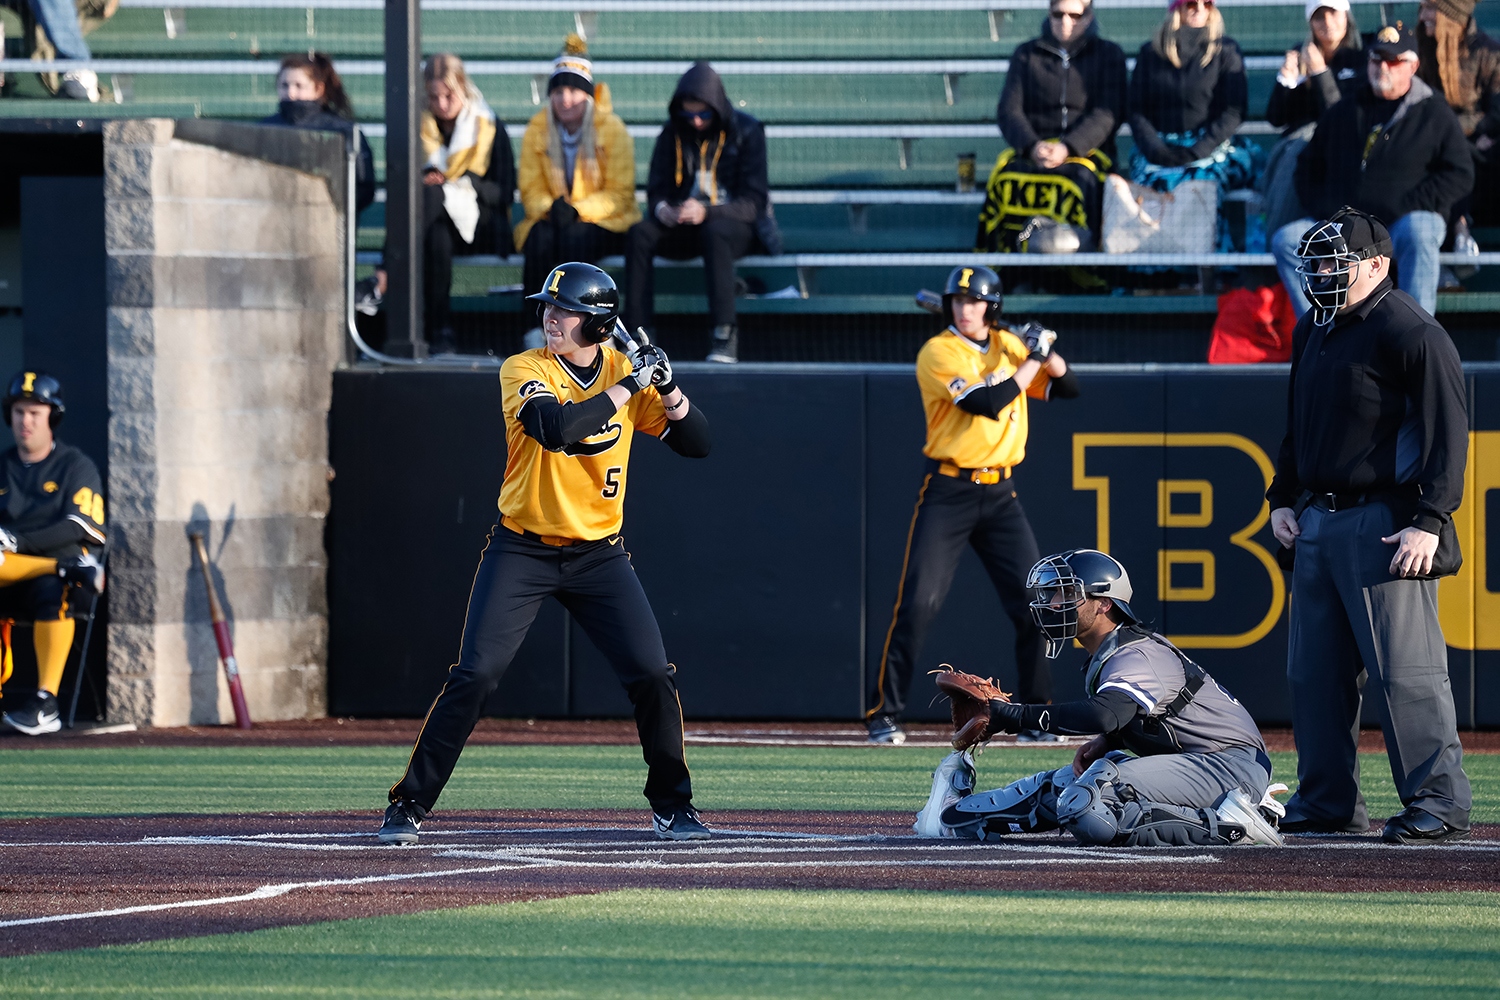 Iowa's Zeb Adreon stands in the batters box during a baseball game against Clarke University on Tuesday, Apr. 2, 2019.